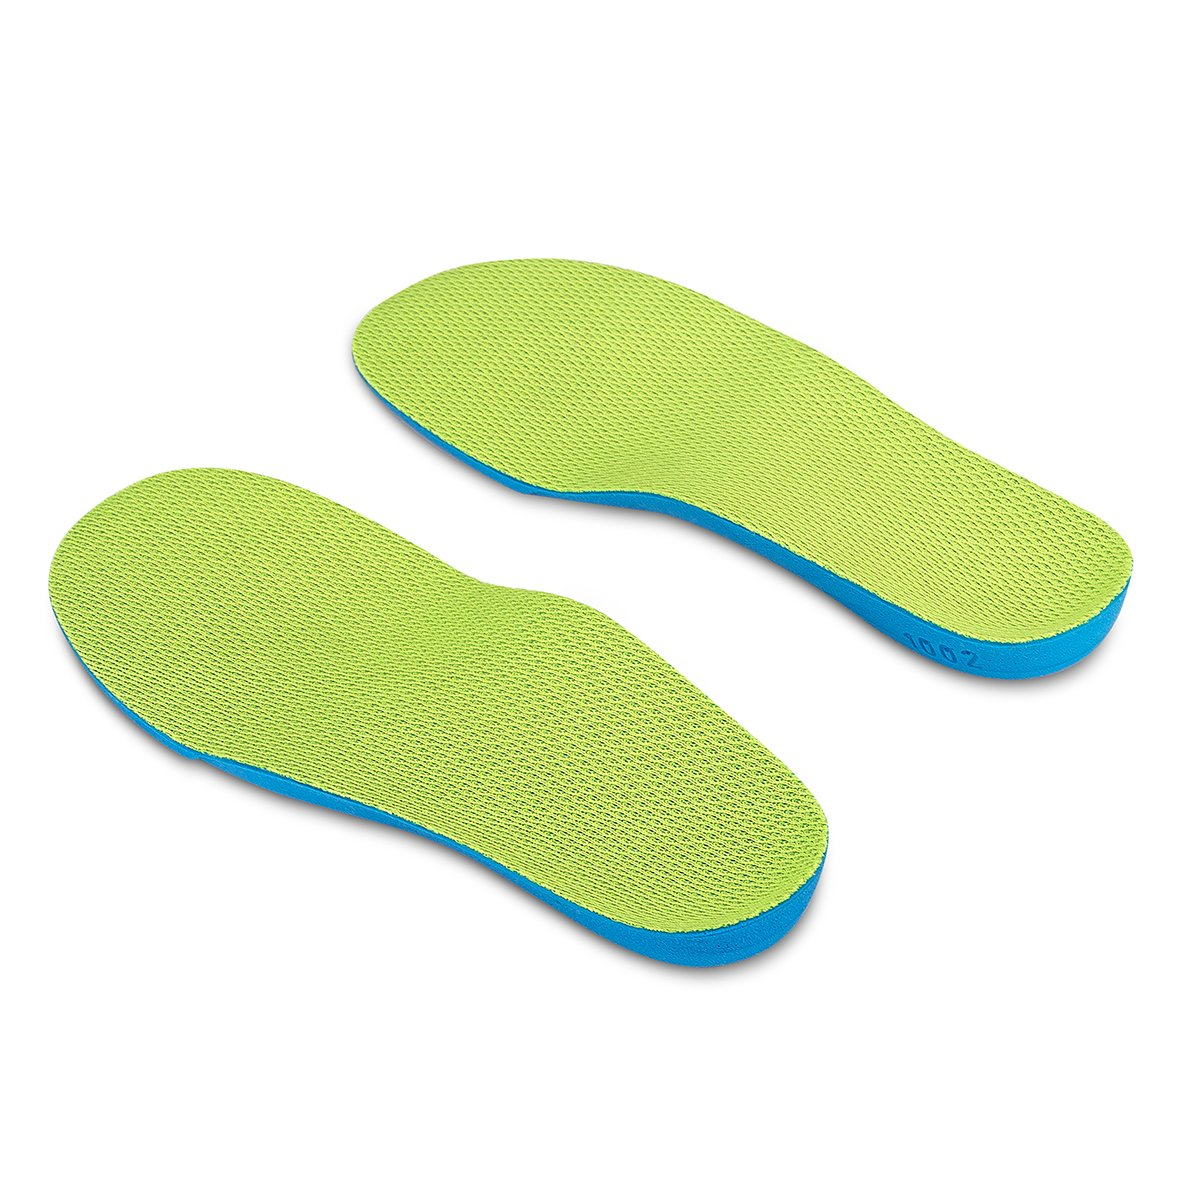 Wellever Childrens Comfort Insoles Kids Inserts for Arch Support and Comfort (28-31 | Little Kids 11.5-1)